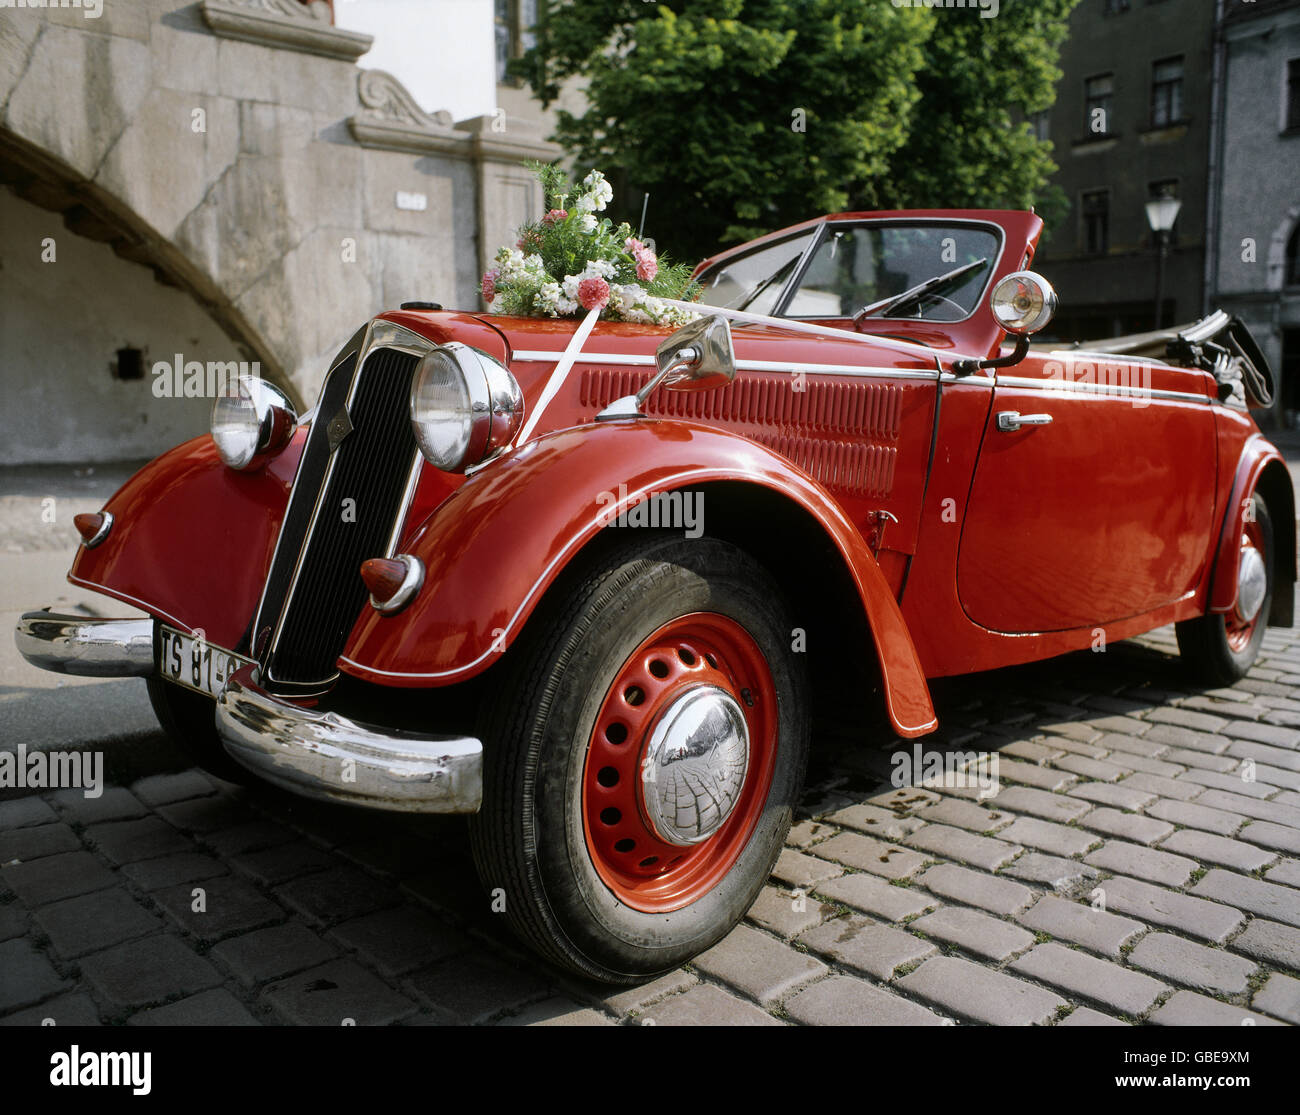 transport / transportation, car, vehicle variants, DKW, veteran car, red, 1930s, 30s, 20th century, historic, historical, - Stock Image